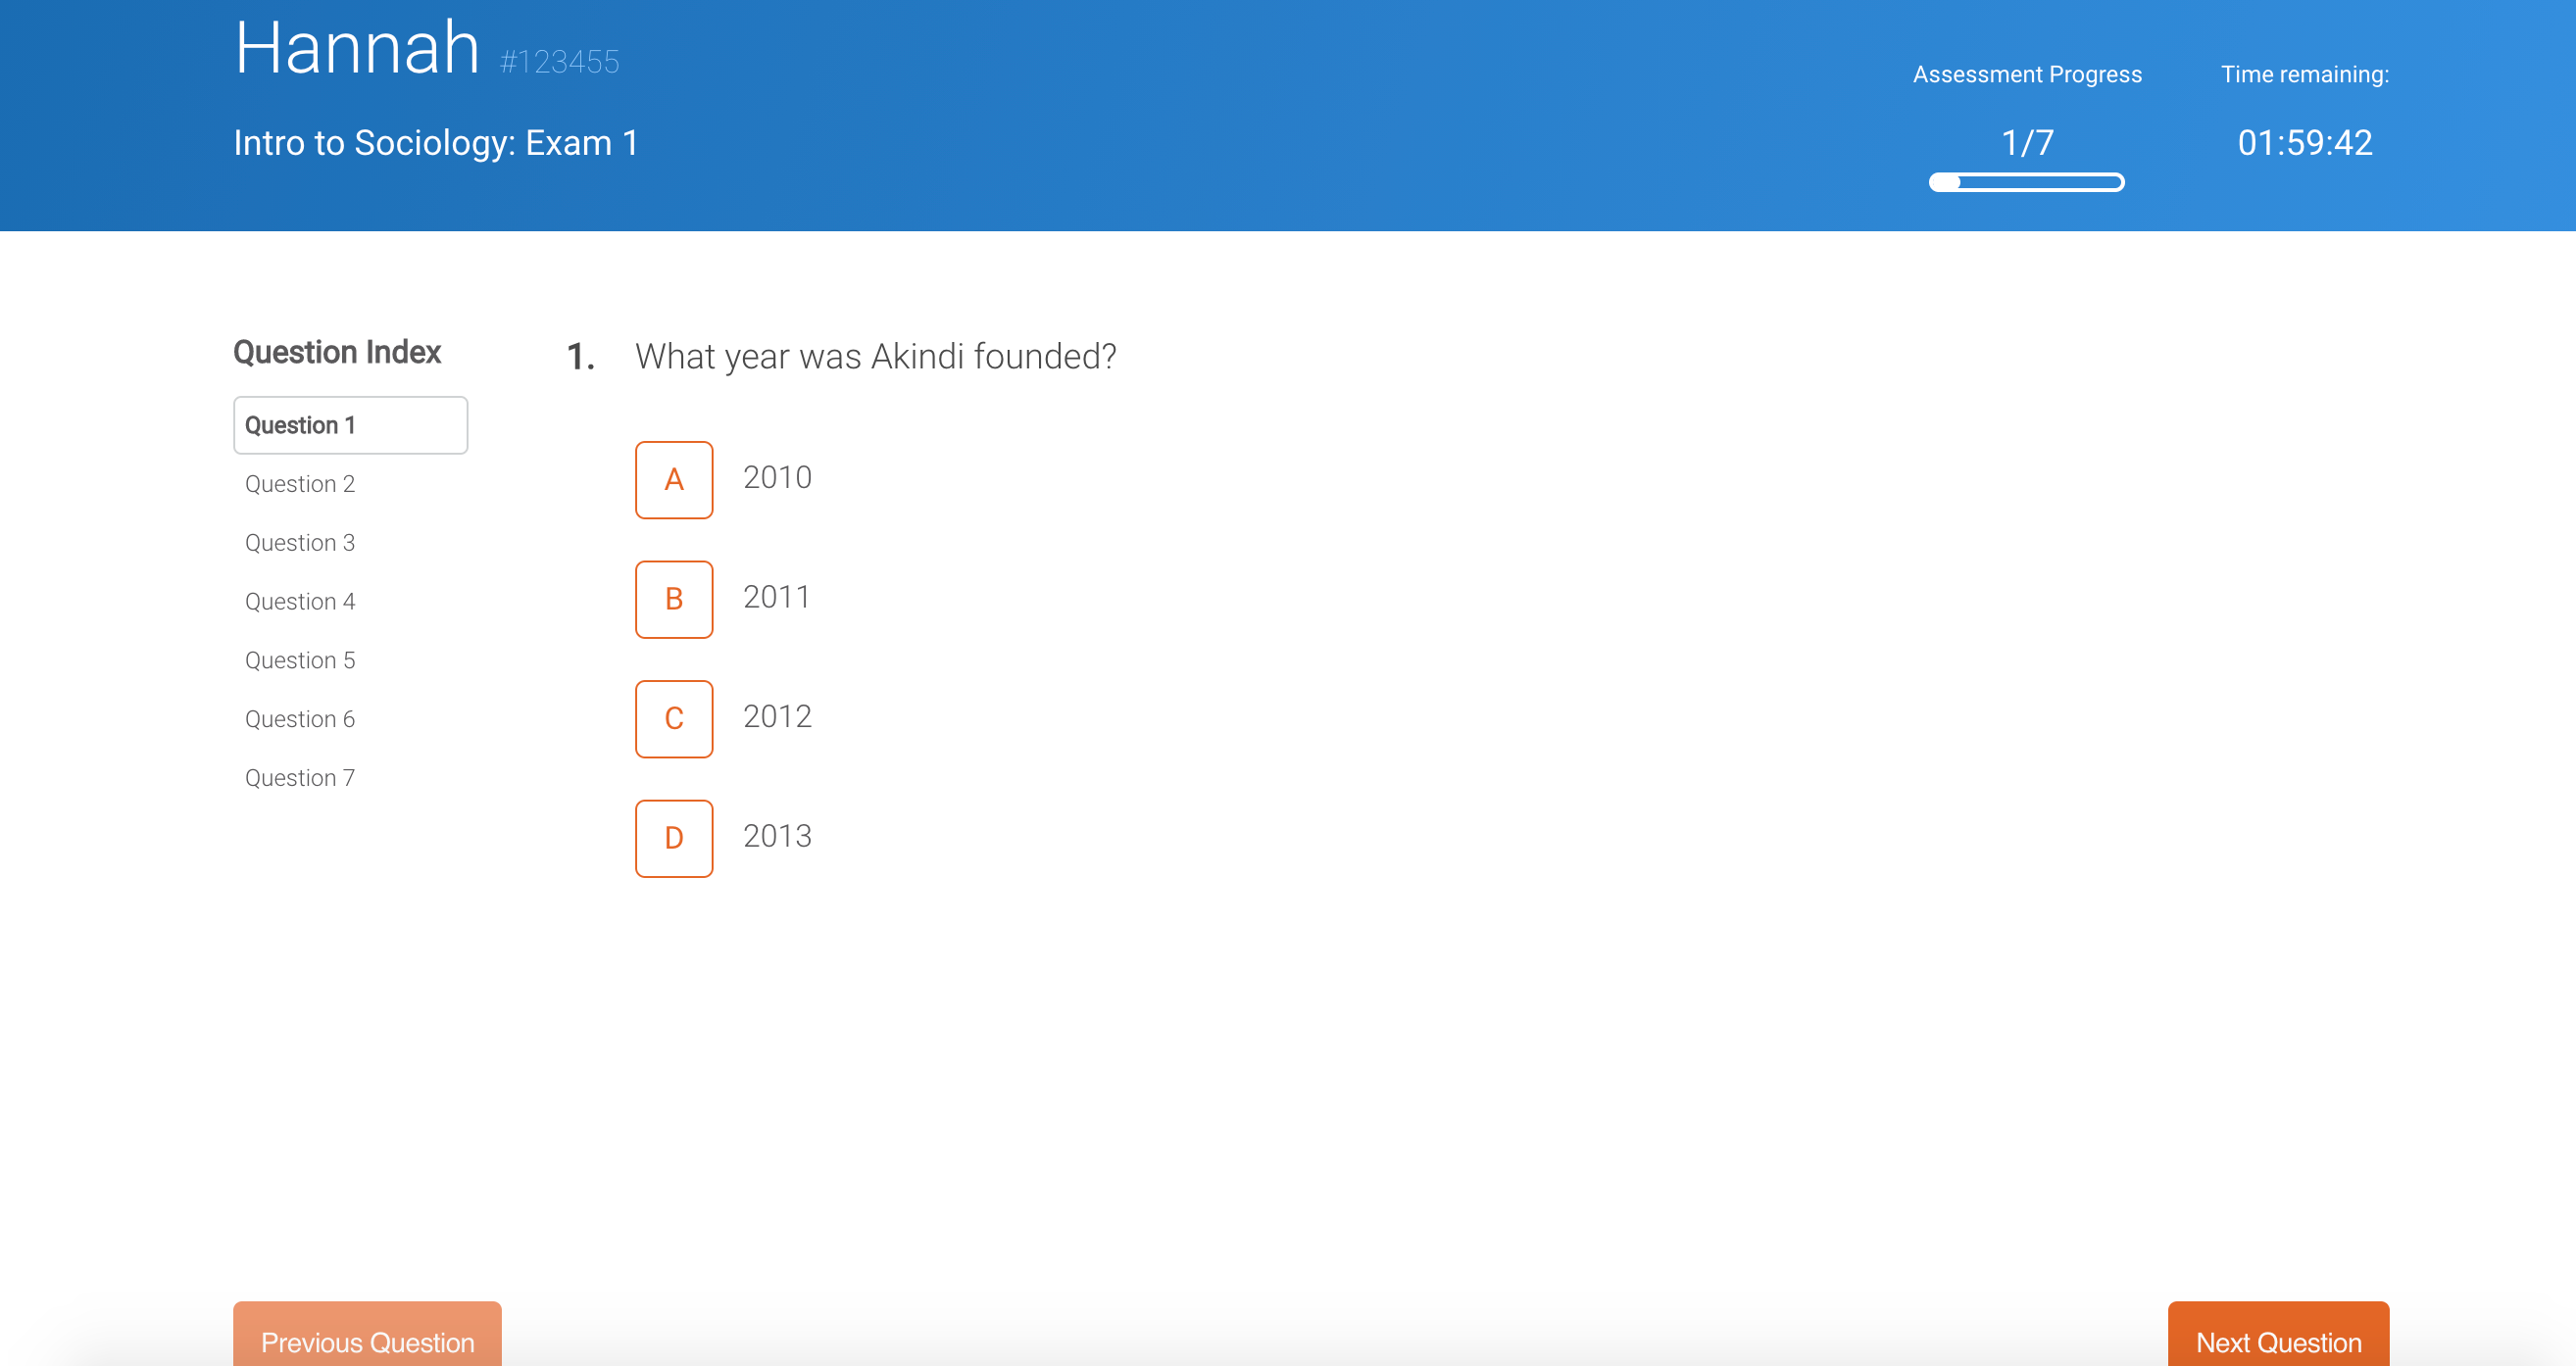 Online assessment with one question at a time displayed